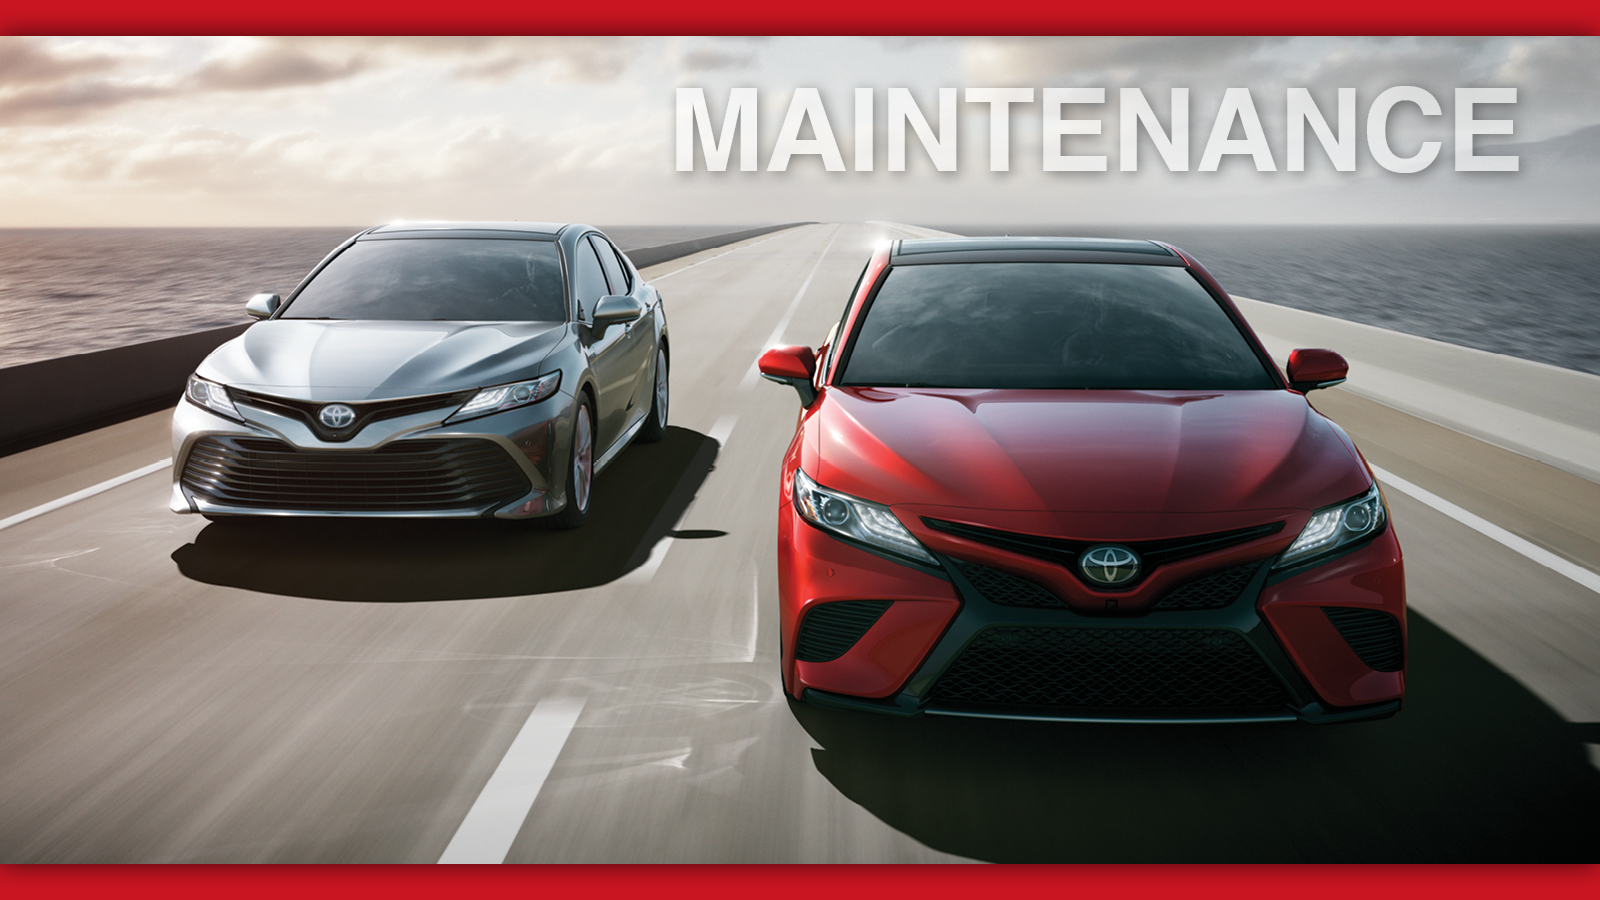 Toyota Camry: Services